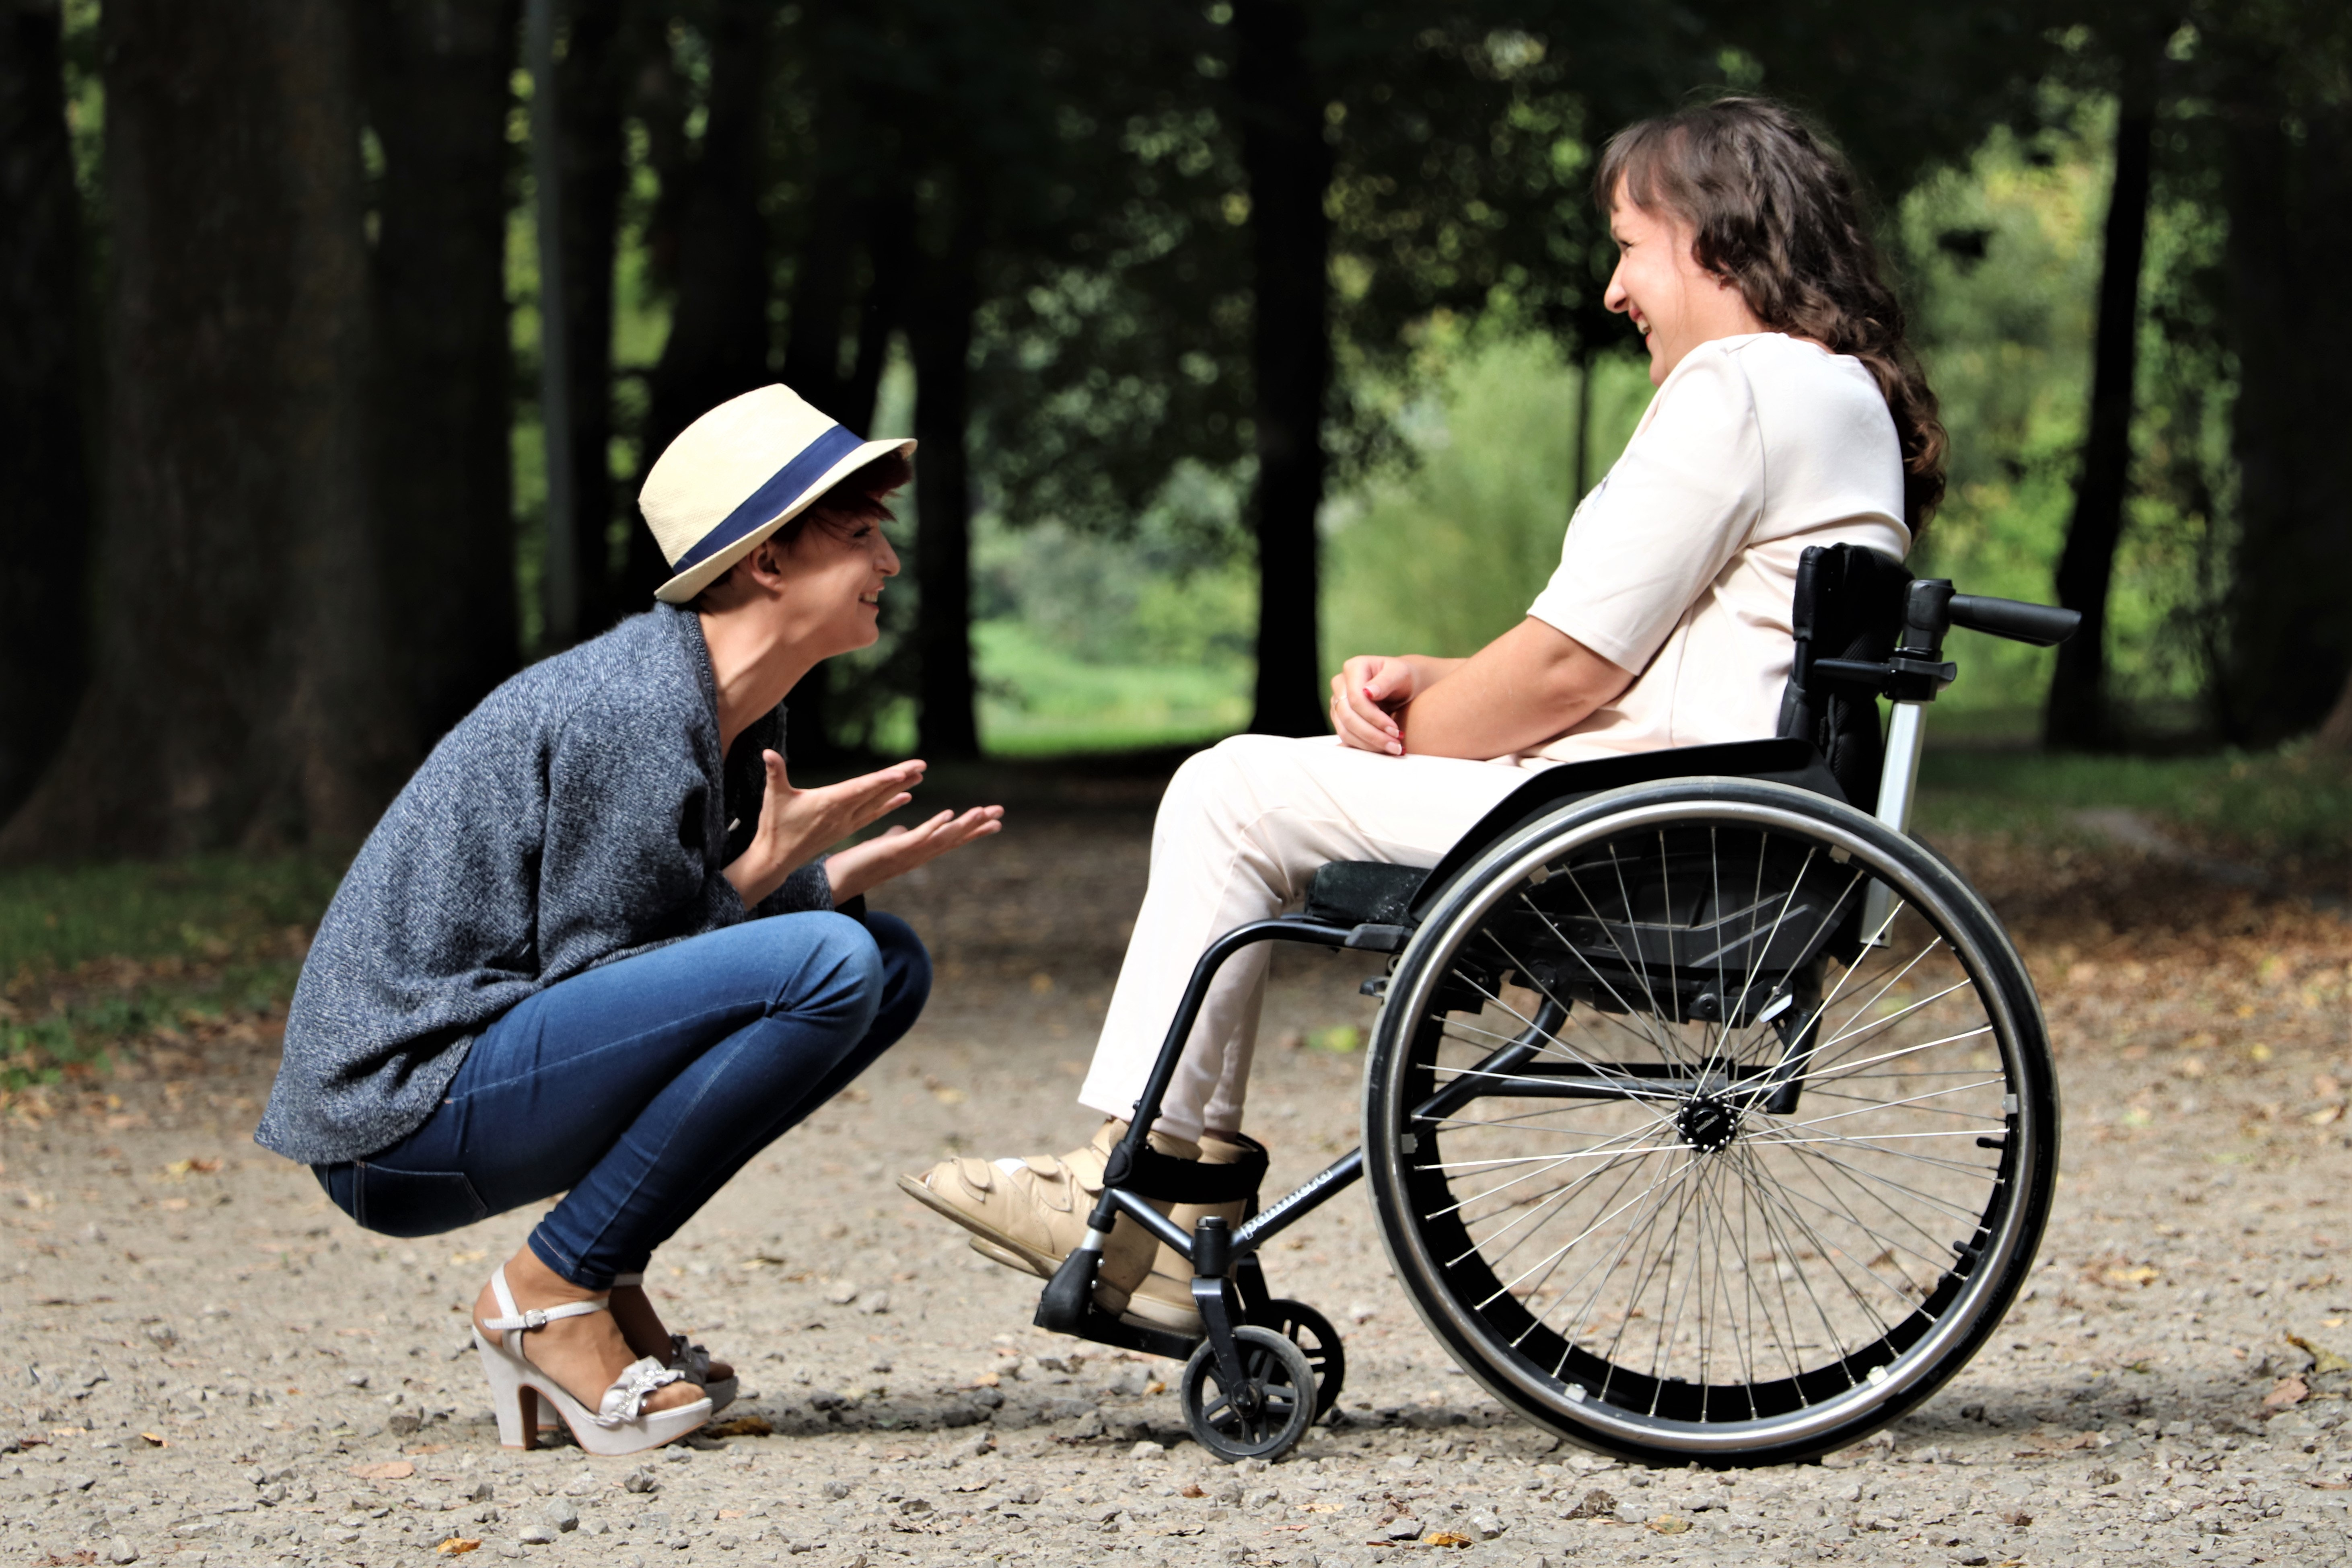 A health care assistant and an adult with disability are having fun at a park